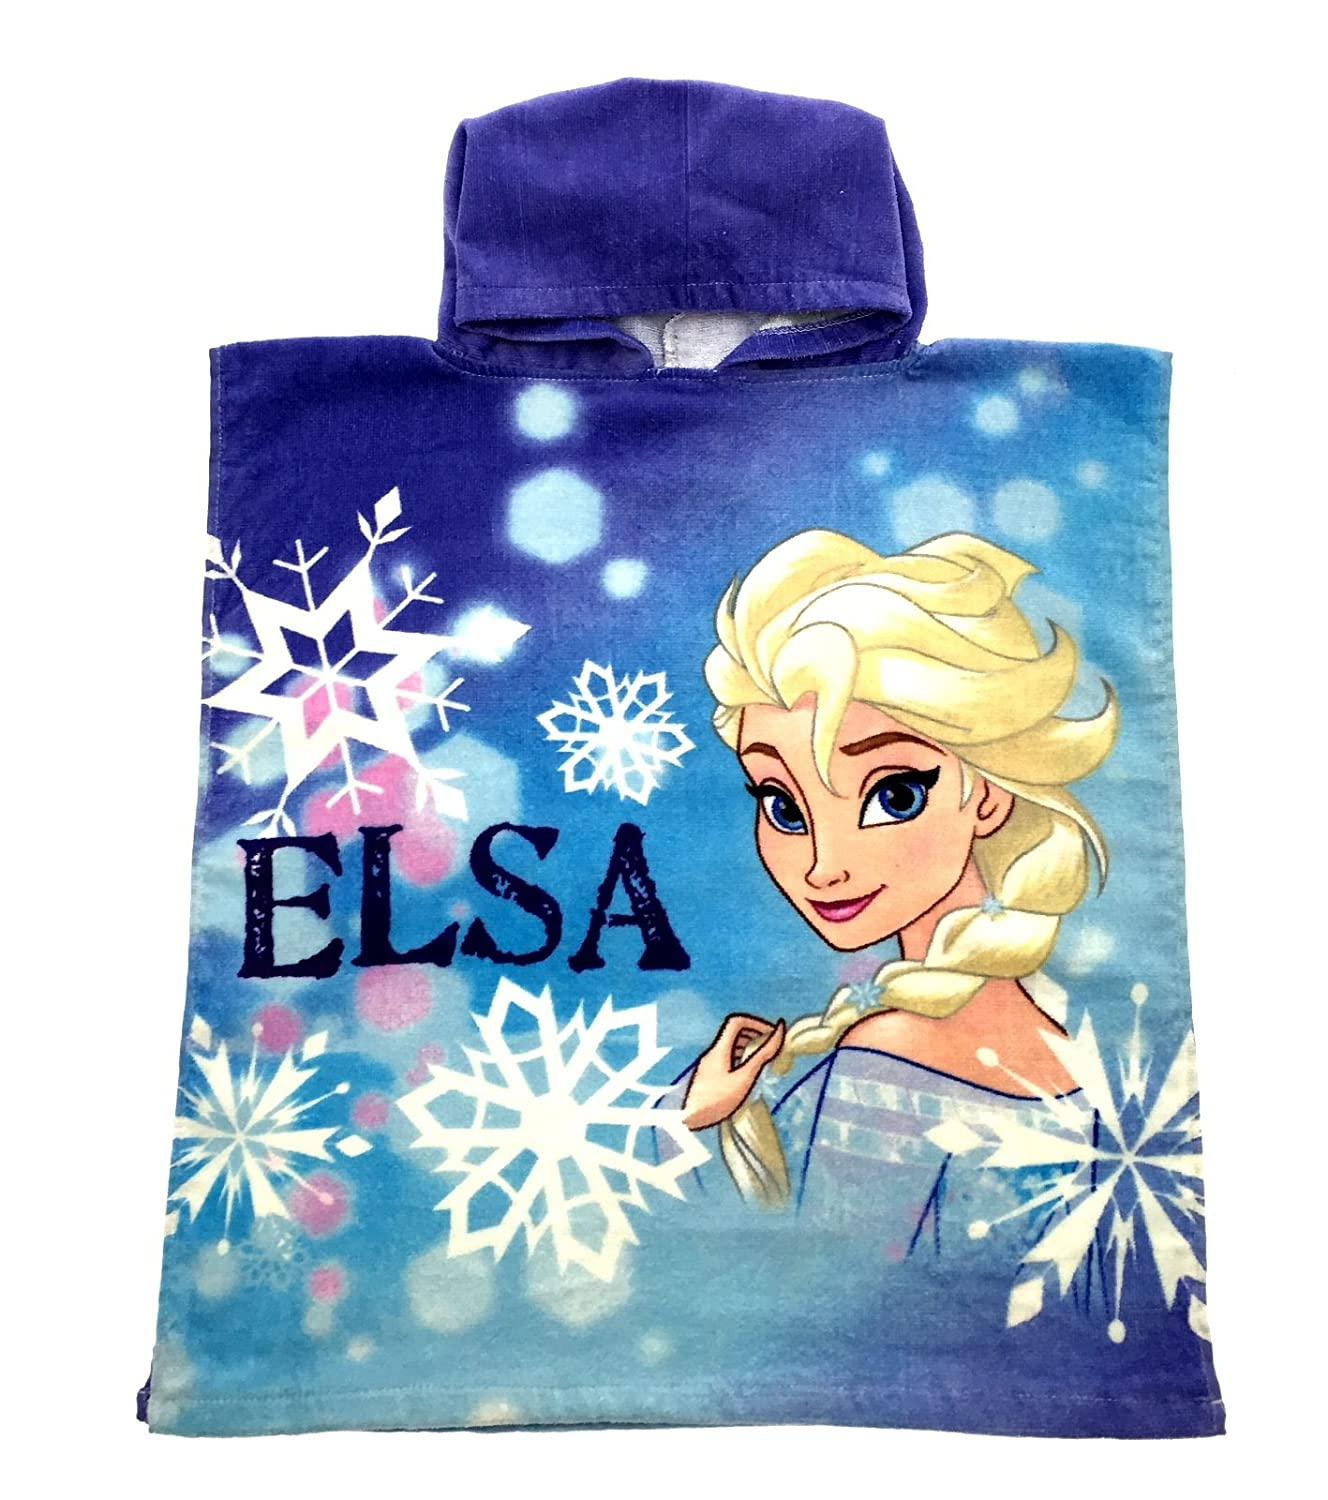 Disney Frozen/Sofia The First Hooded Poncho Beach Towel Swim Cover-up Childrens Kids Girls One Size 10578#WH26001